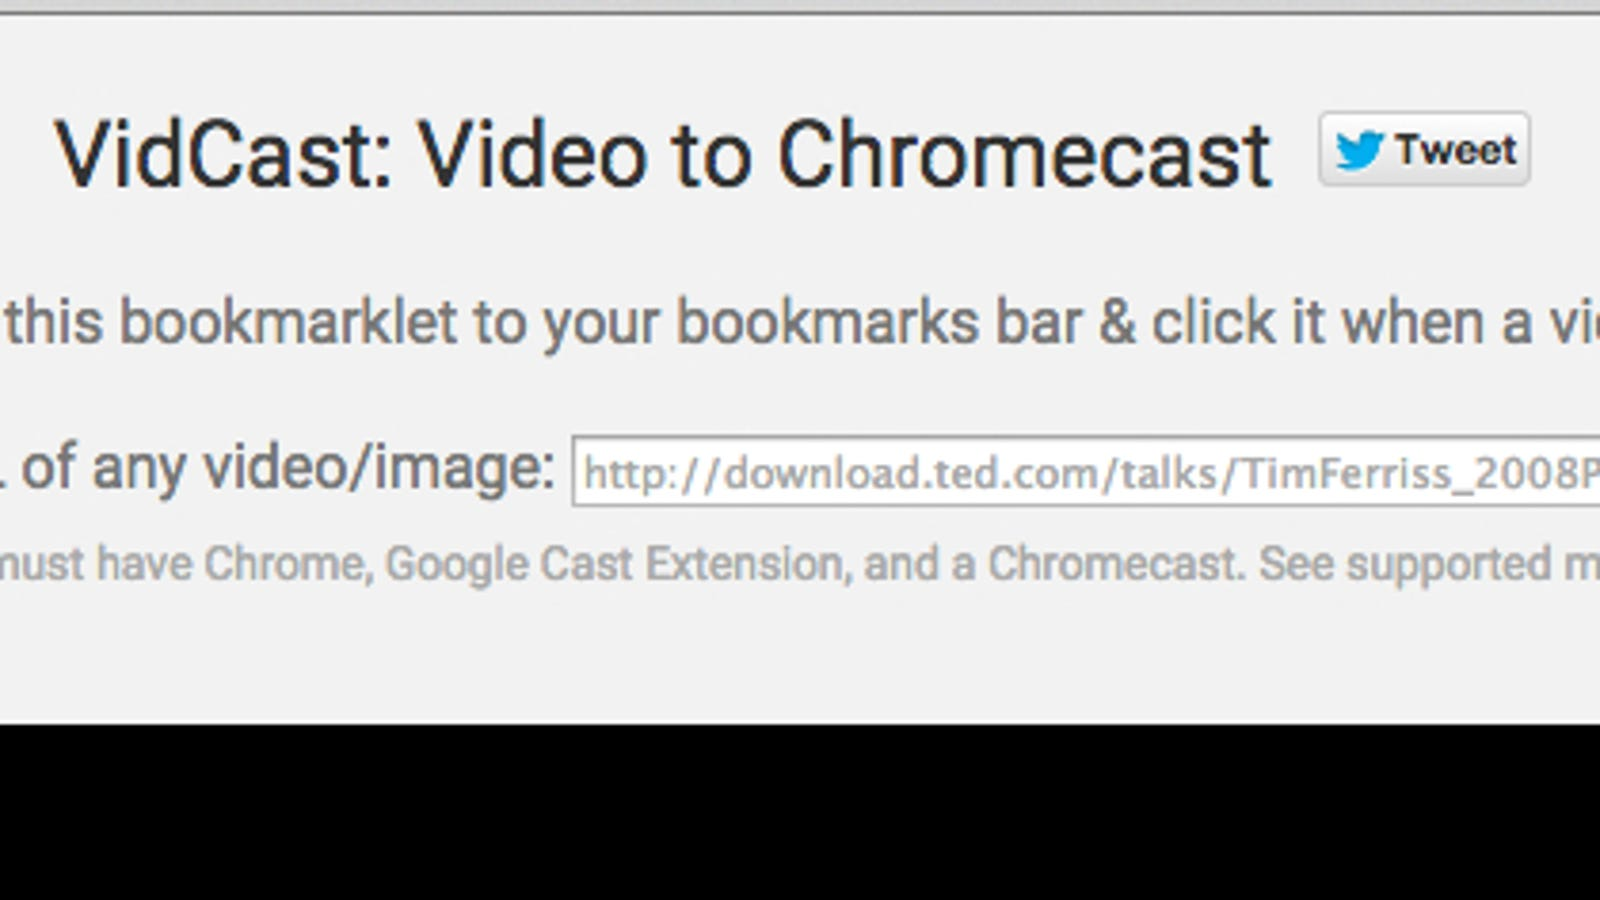 VidCast Streams Almost Any Web Video to Your Chromecast